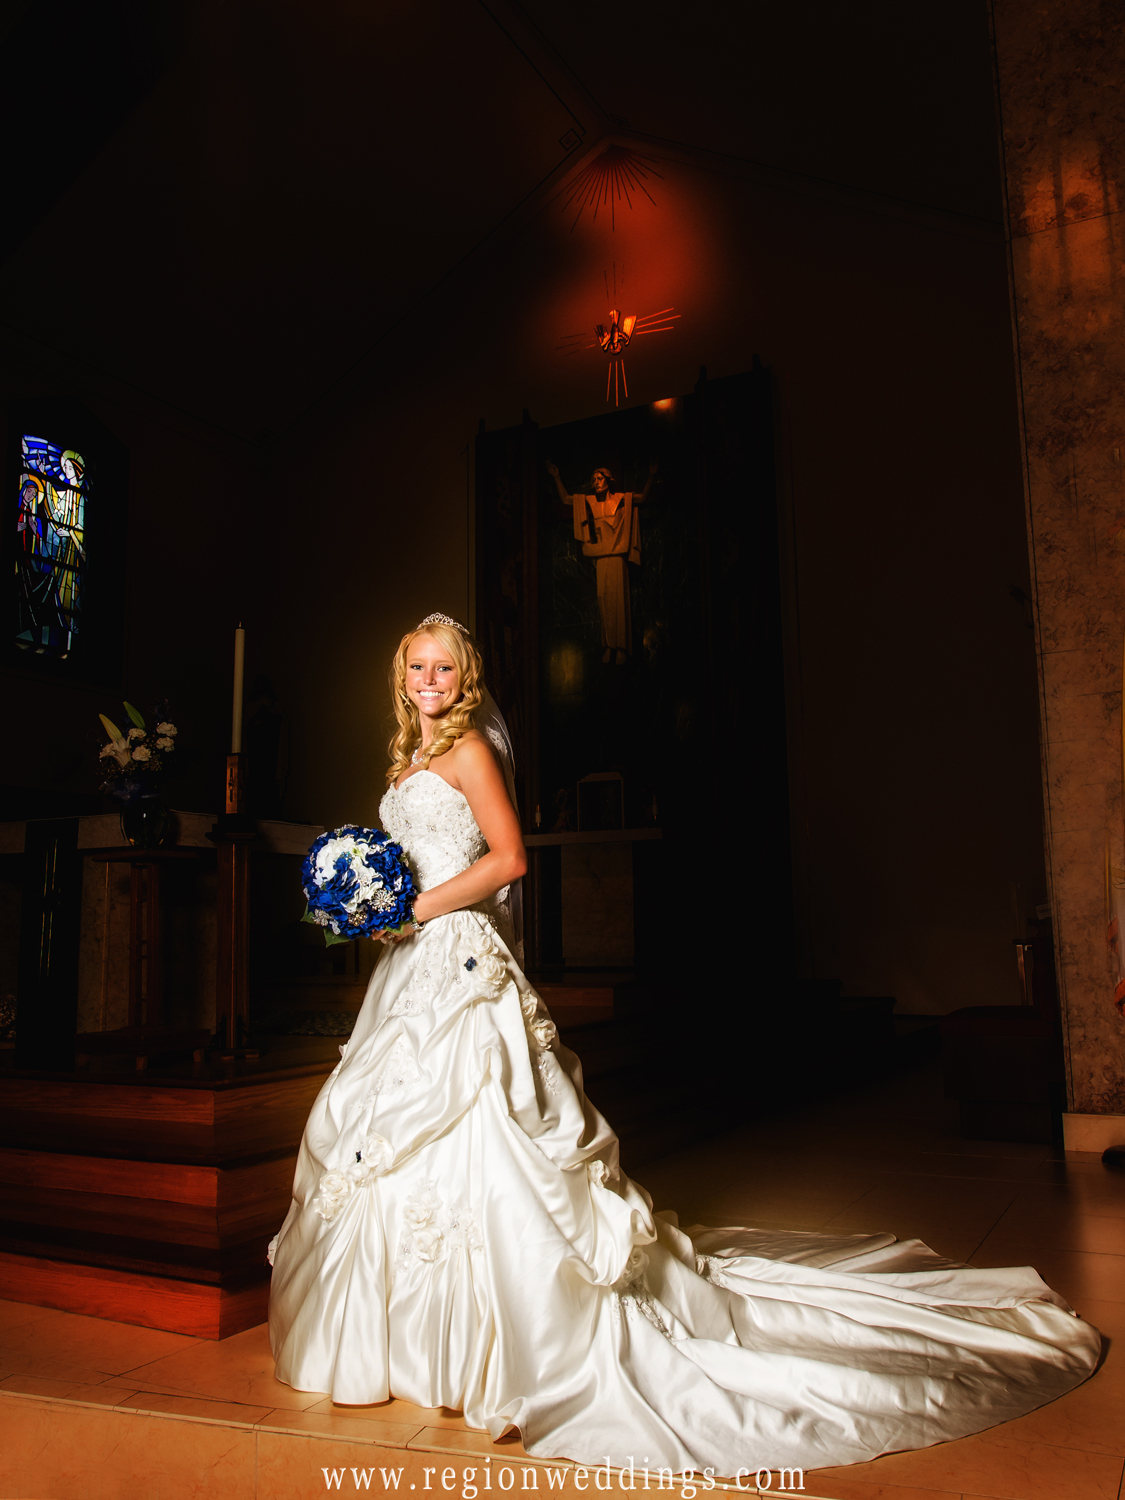 The bride clutches her blue bouquet of flowers while posing for a wedding photo inside of St. Mary's Church in Griffith.